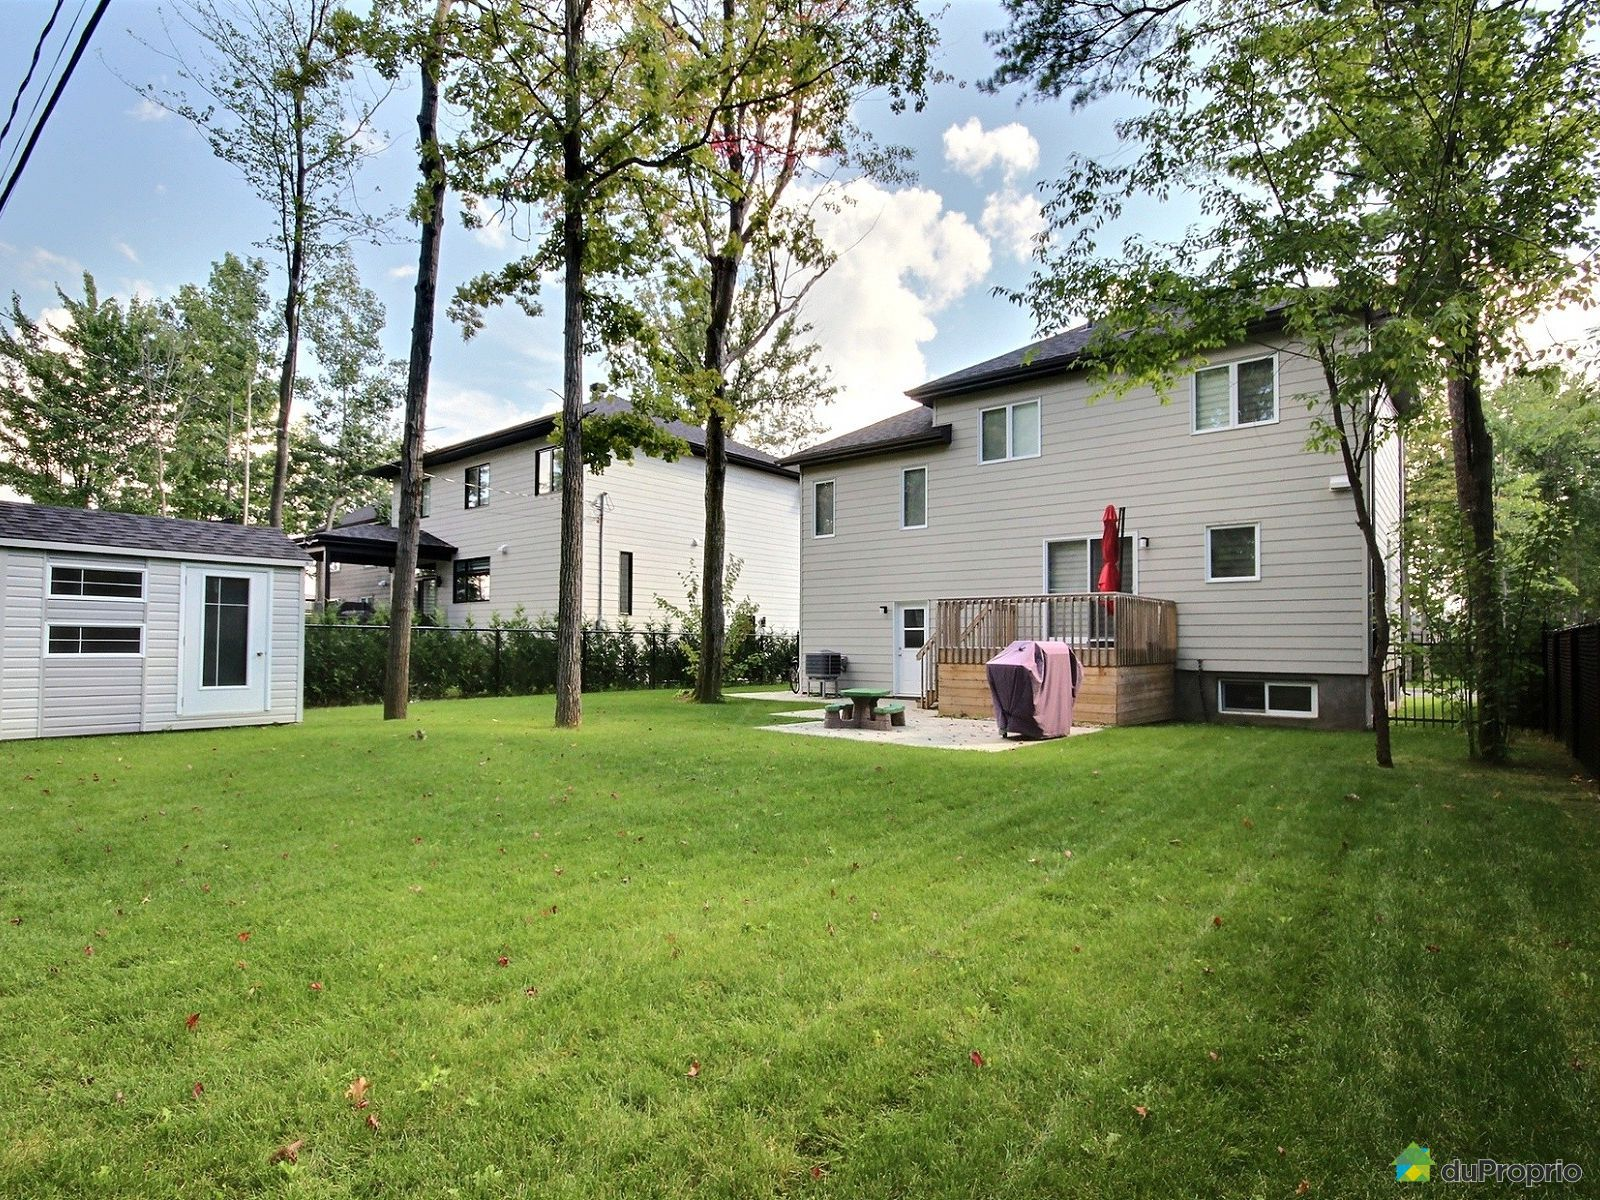 maison 224 vendre chambly 1100 rue breux immobilier qu 233 bec duproprio 718911